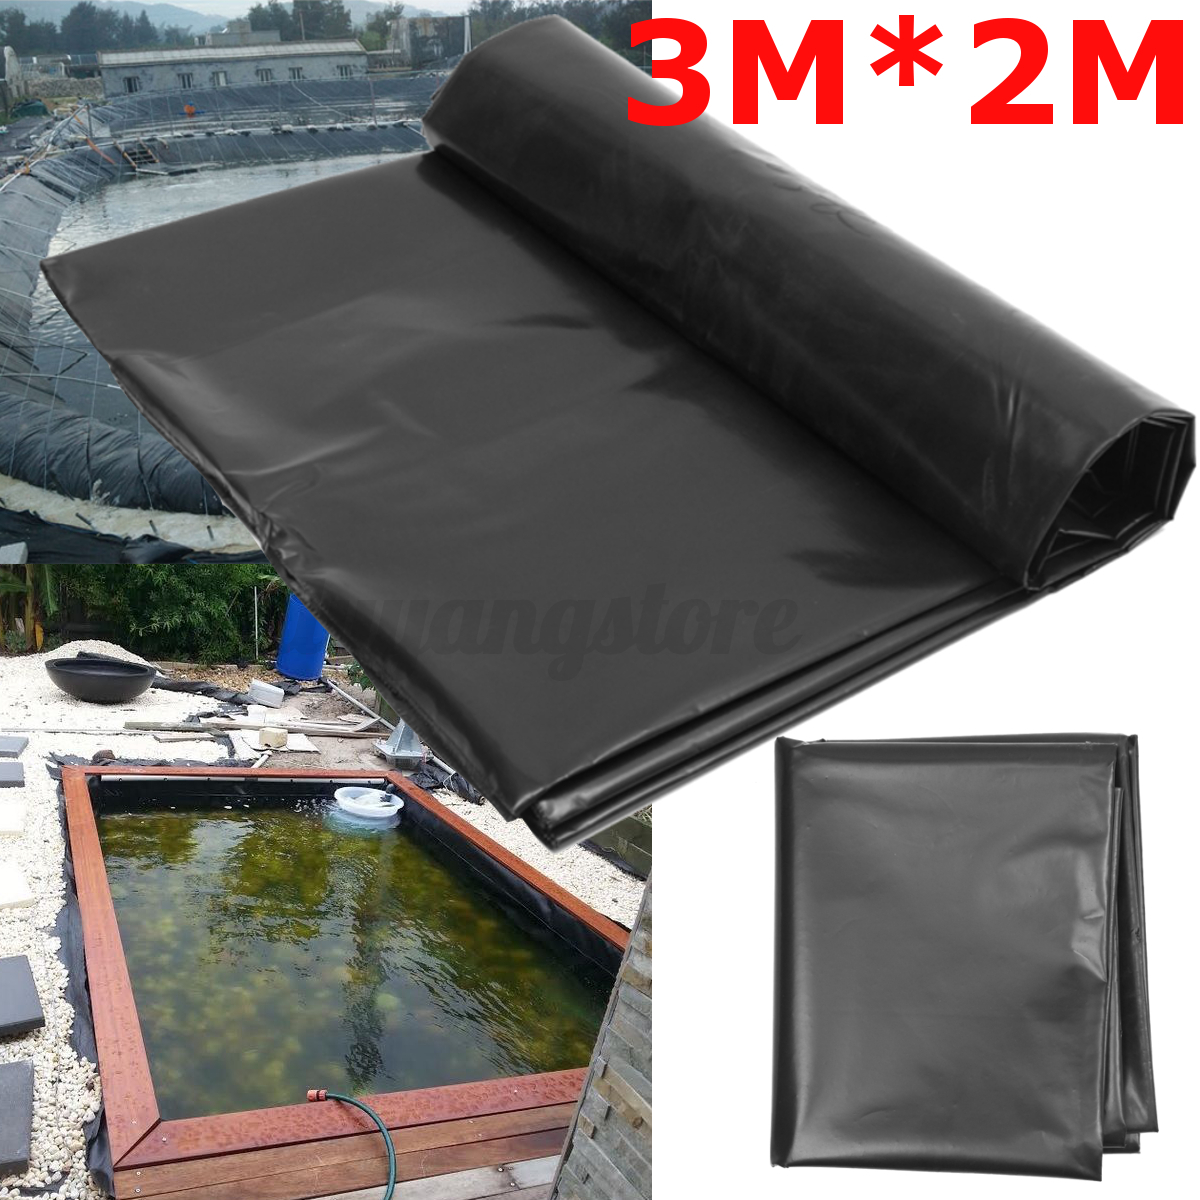 Durable fish pond liner gardens pools hdpe membrane for Garden pool liners uk